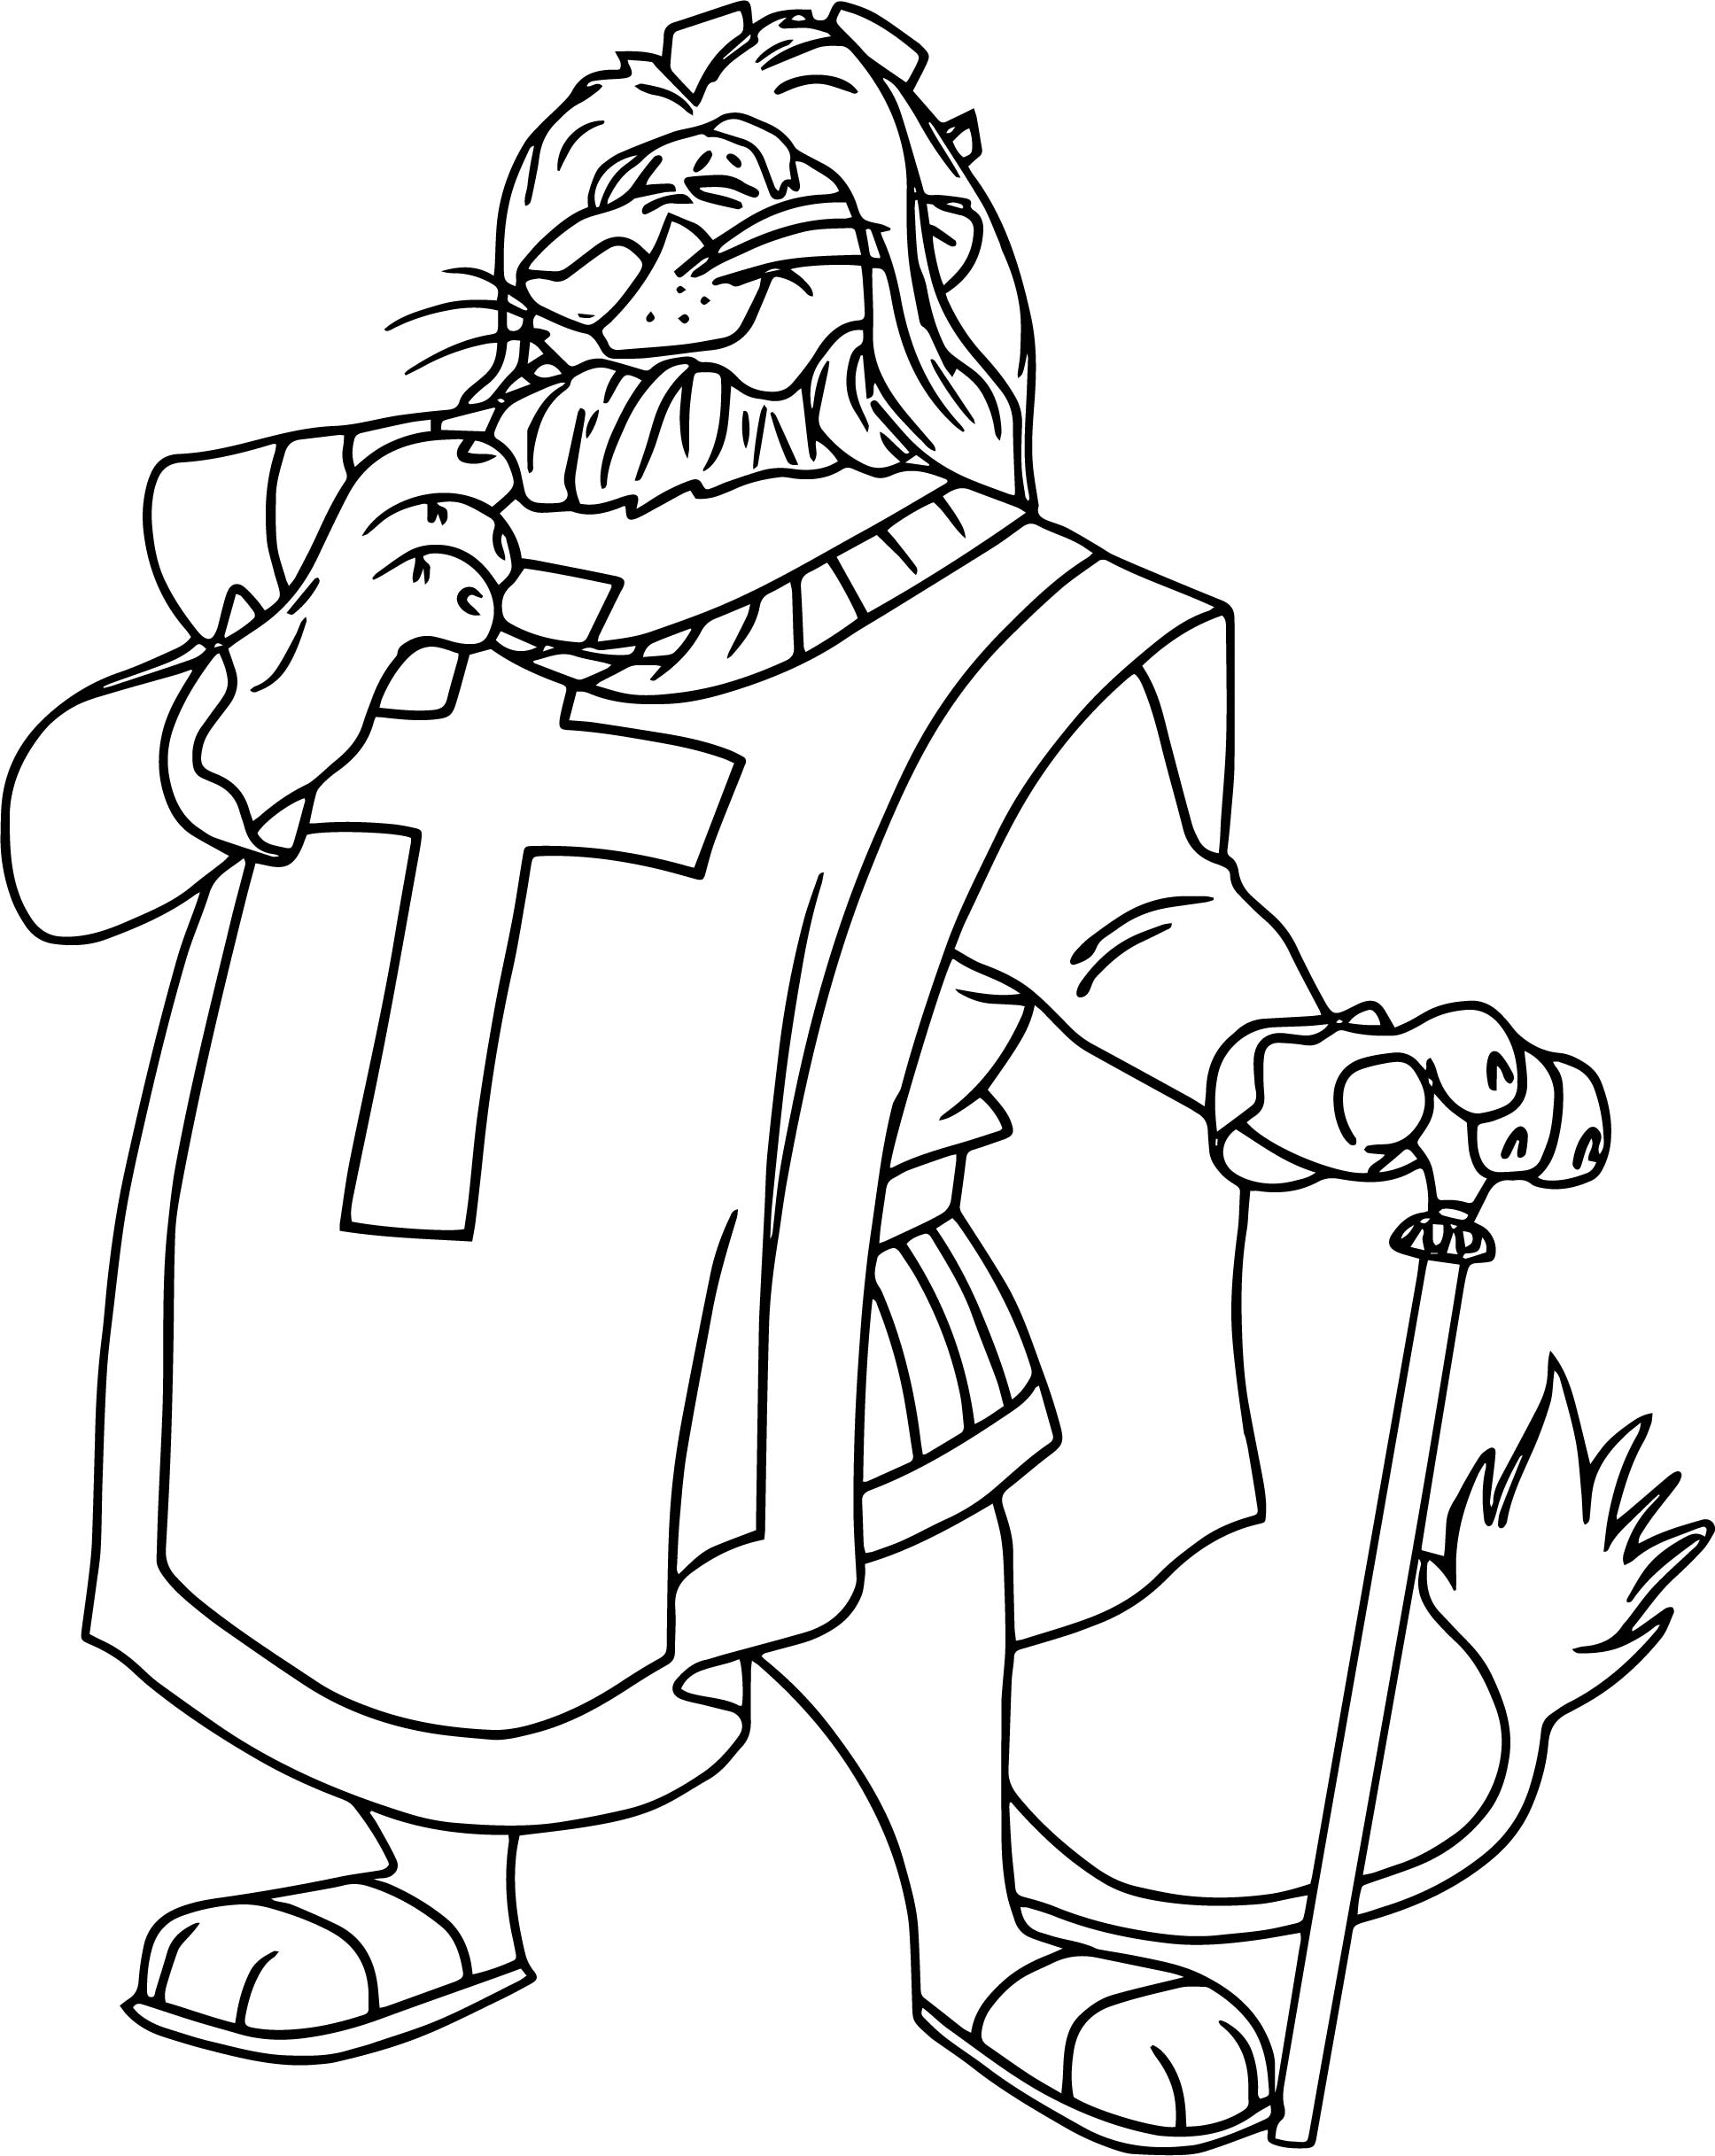 Robin Hood King Lion Coloring Page | Wecoloringpage.com